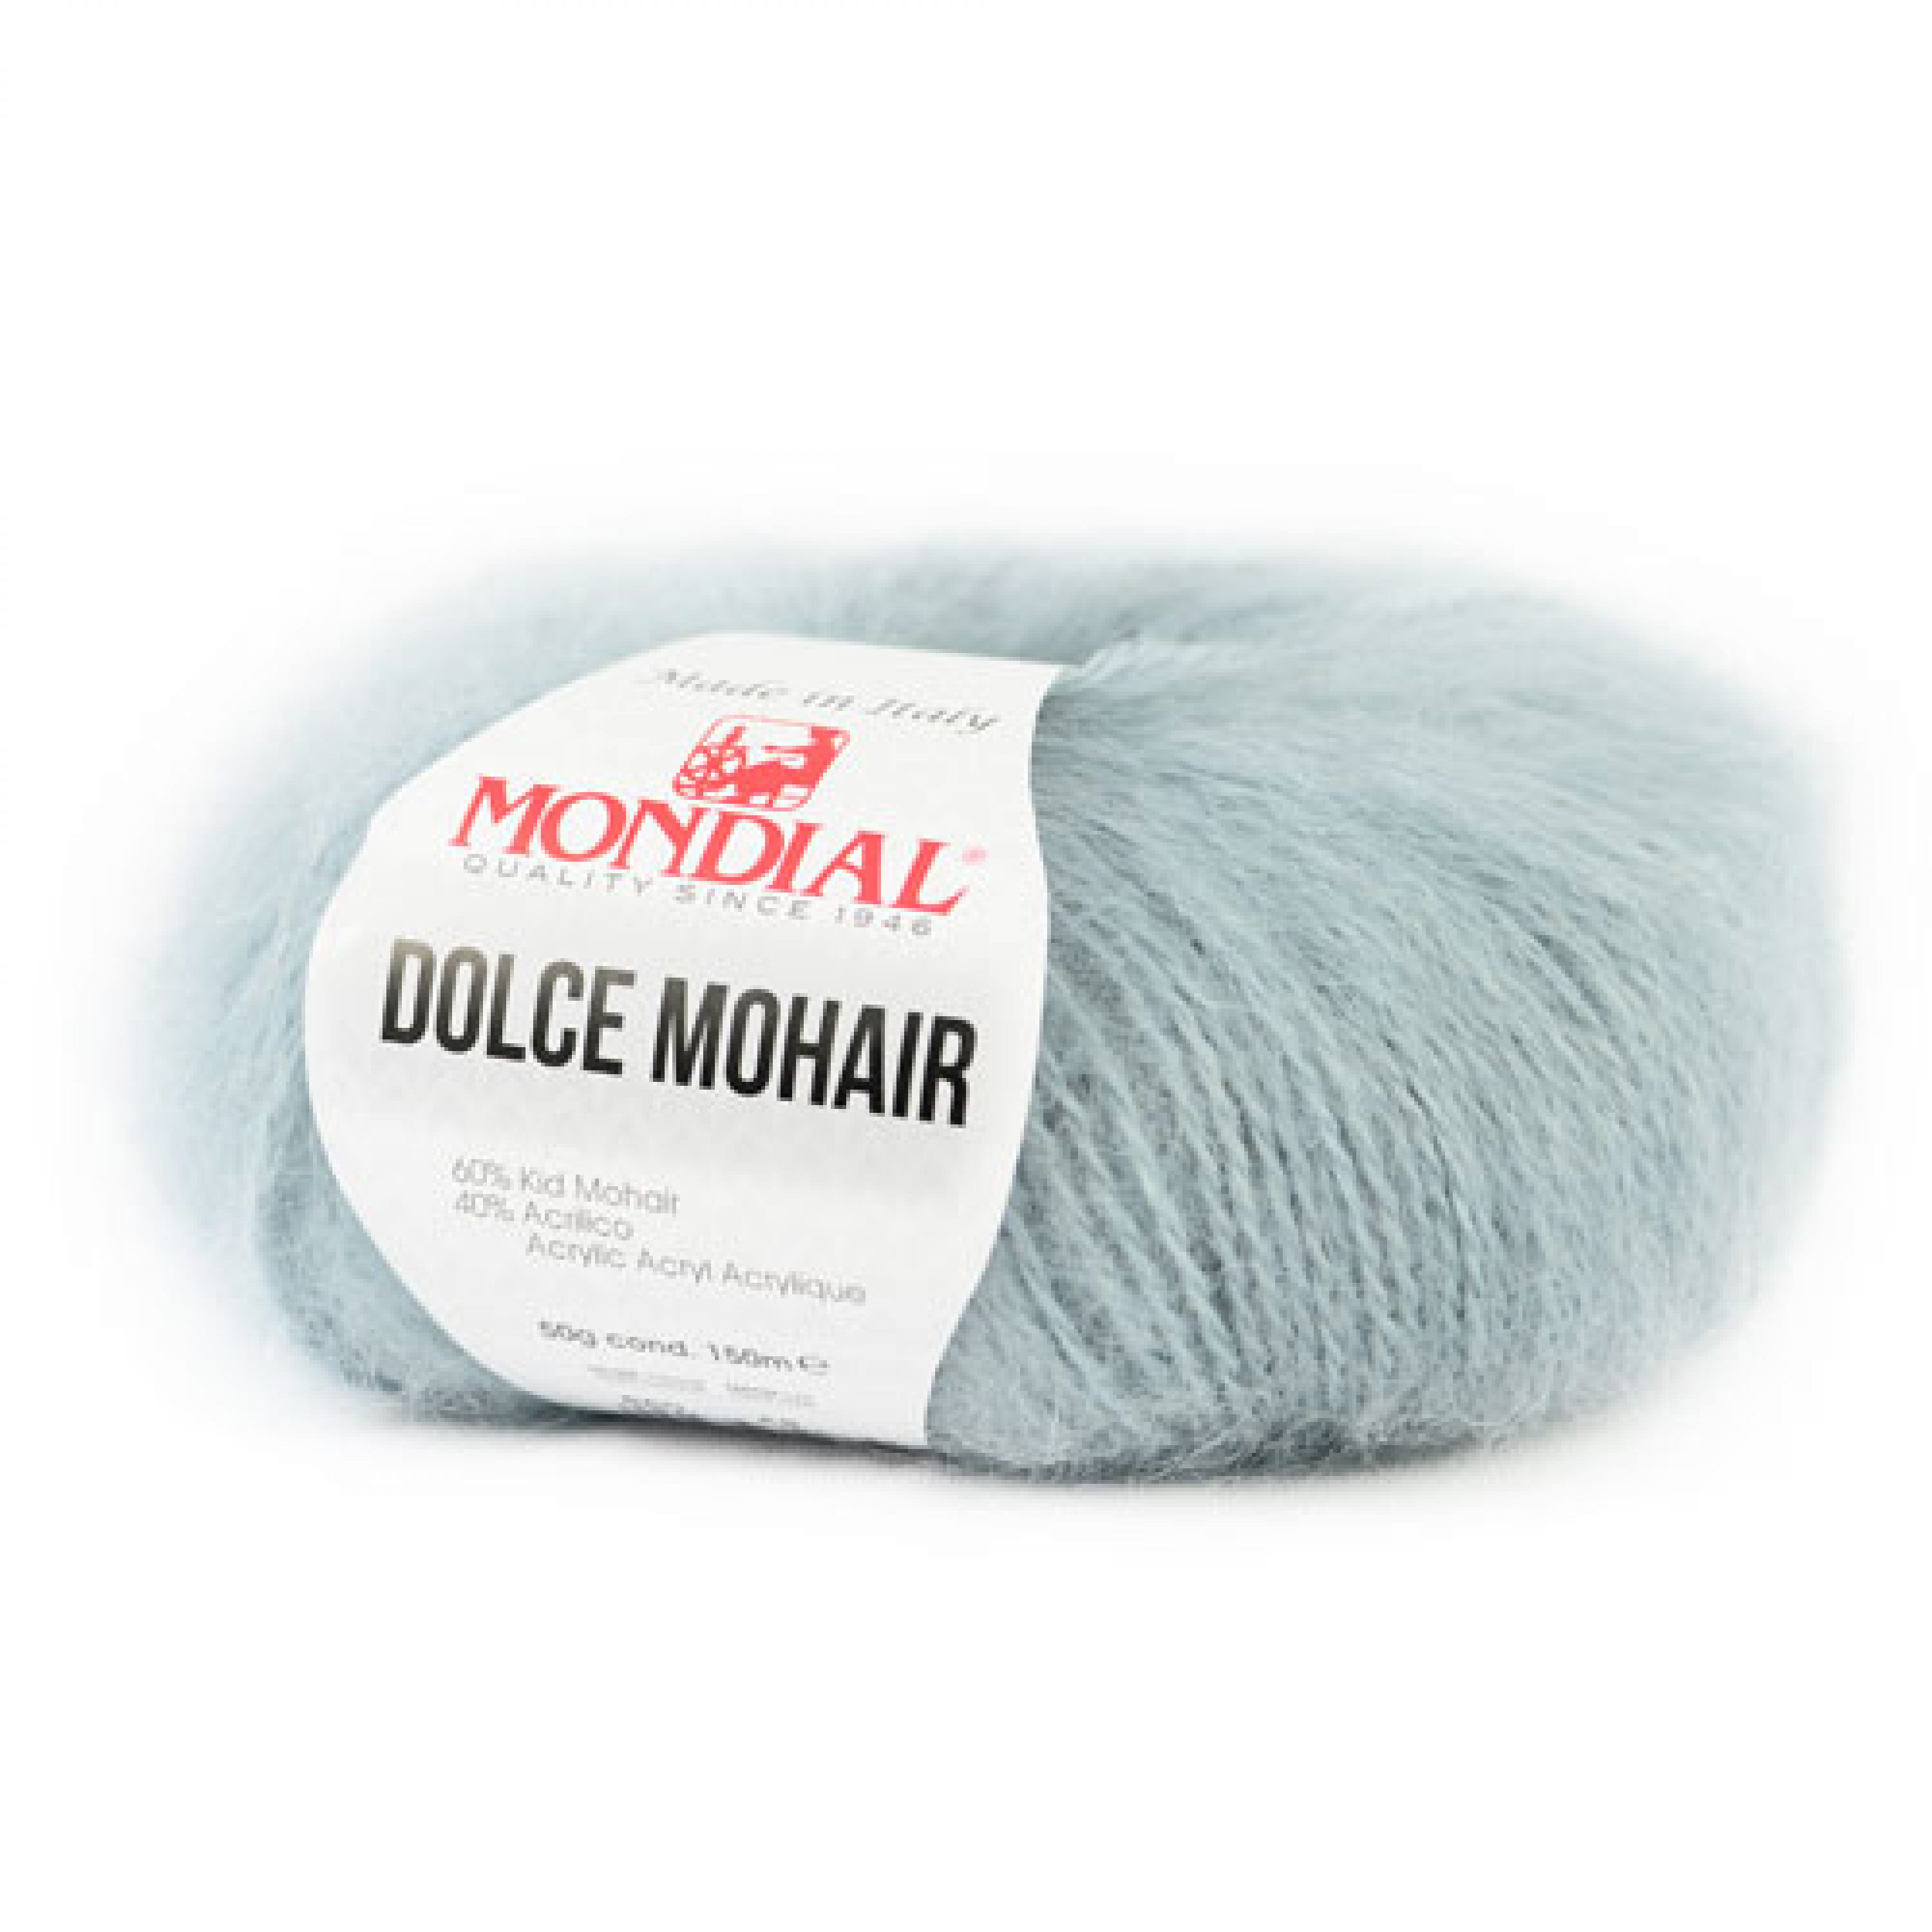 dolce_mohair